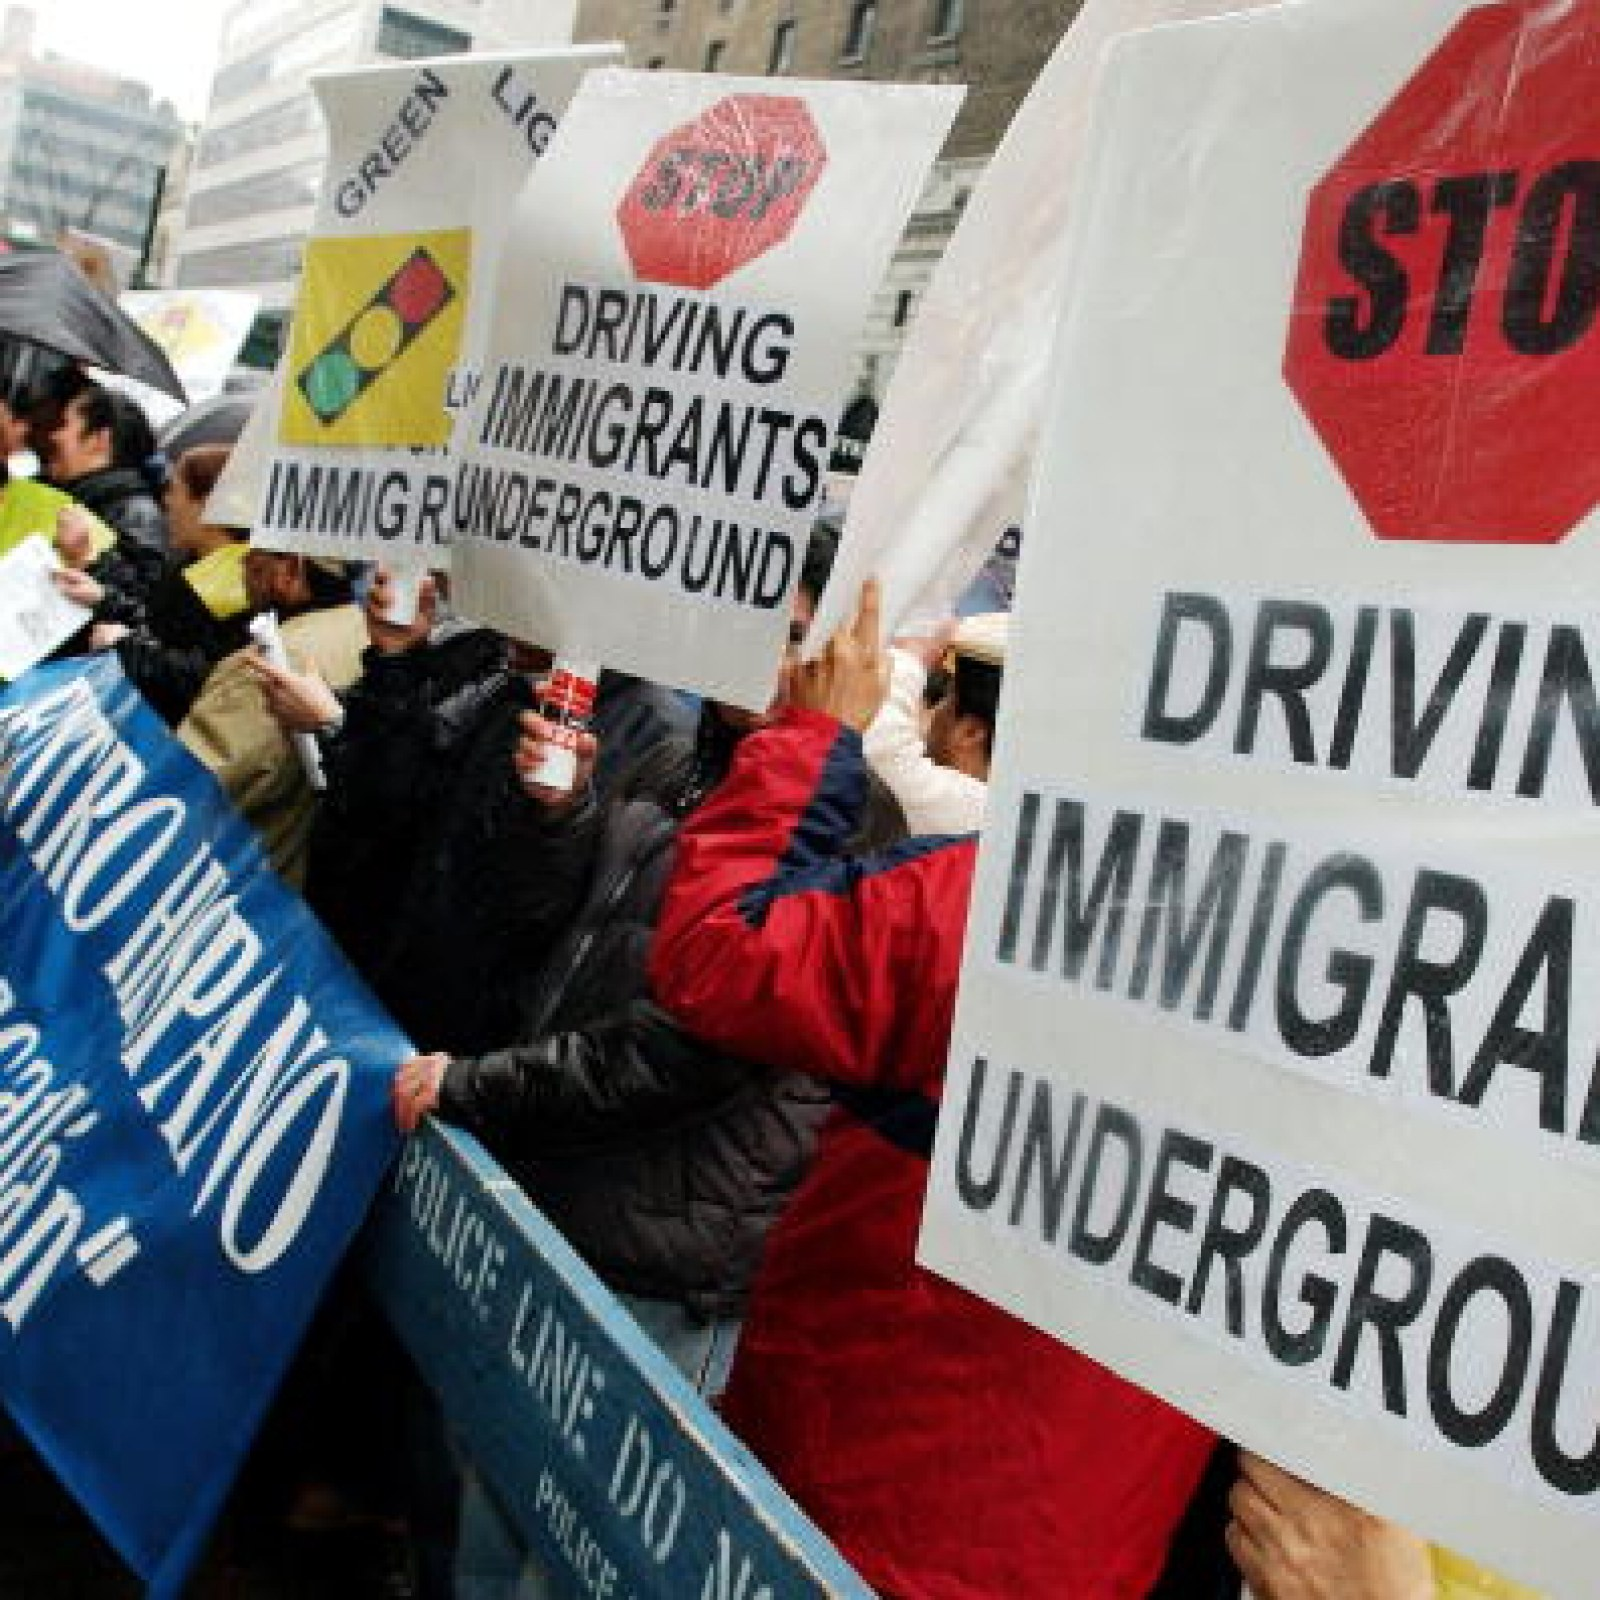 NY Lawmakers Approve Drivers Licenses for Undocumented